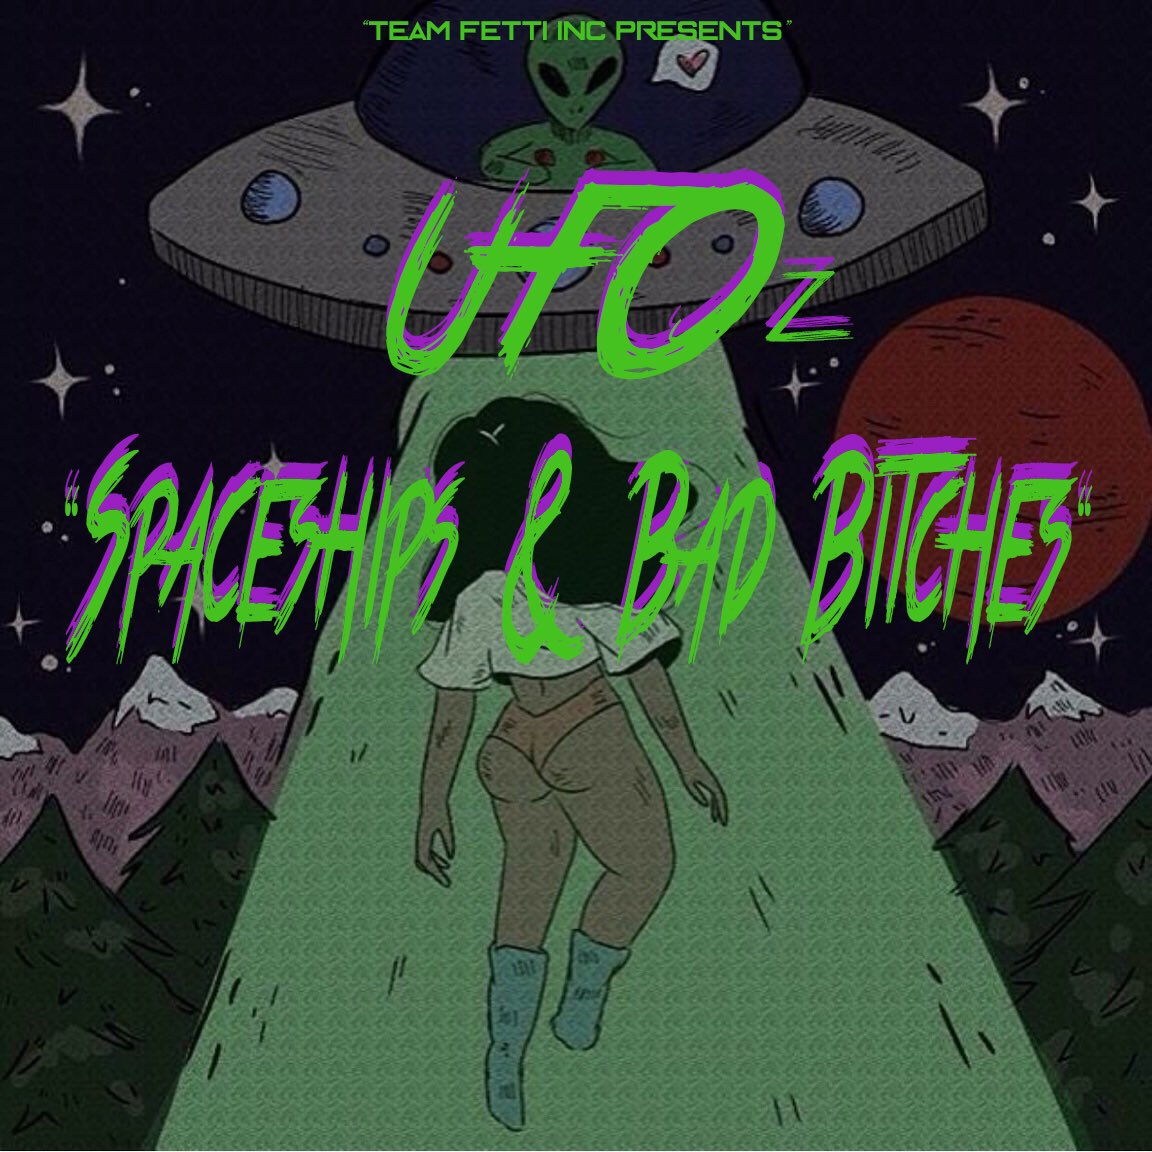 UFOz will b dropping new music any day now!!! https://t.co/O0atjC3jrg